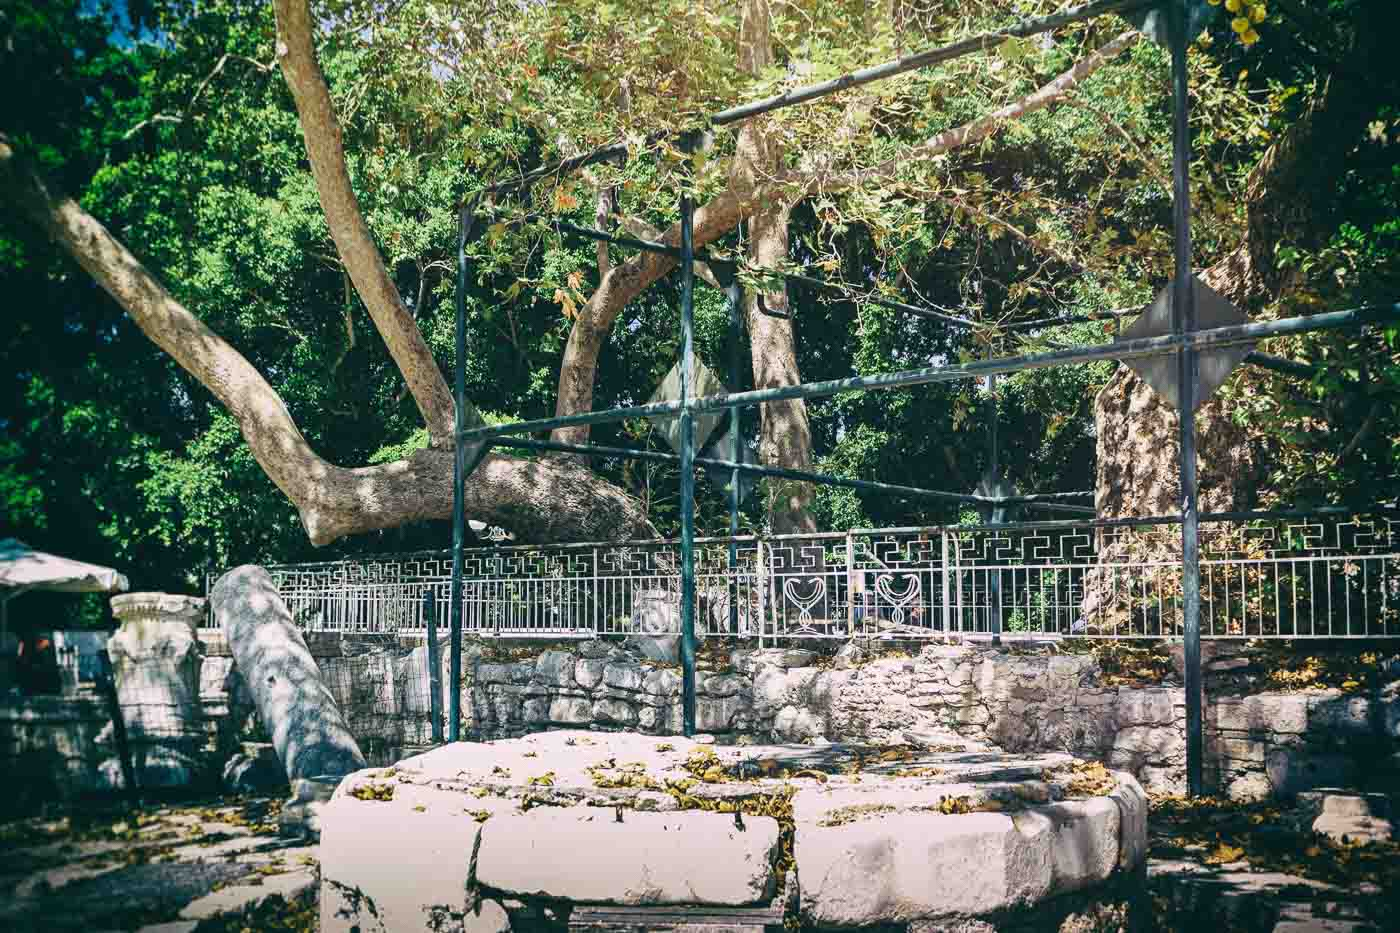 The Plane Tree of Hippocrates in Kos